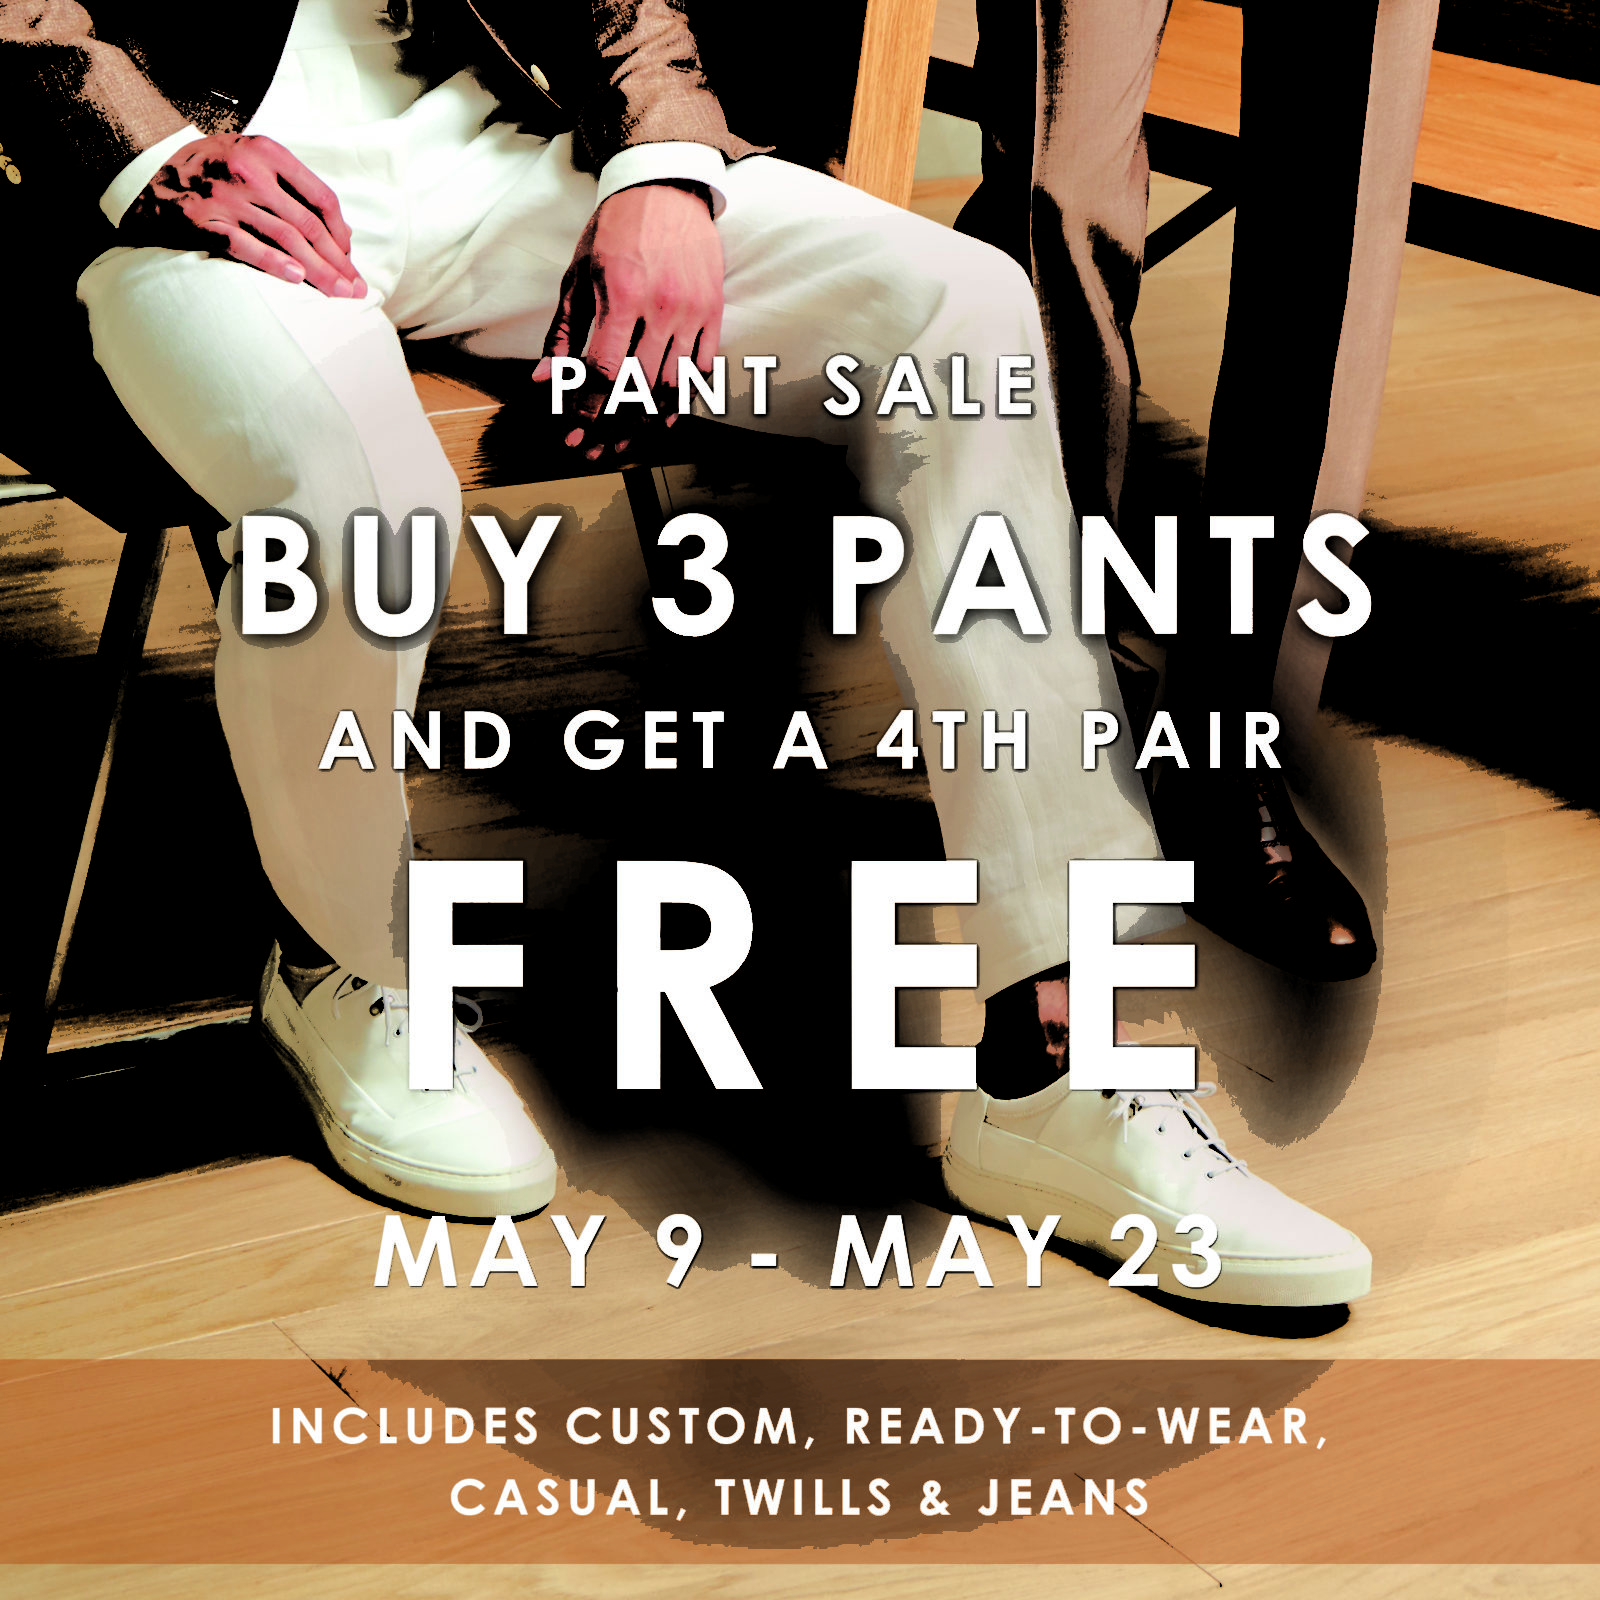 Pant Sale EventsandPress